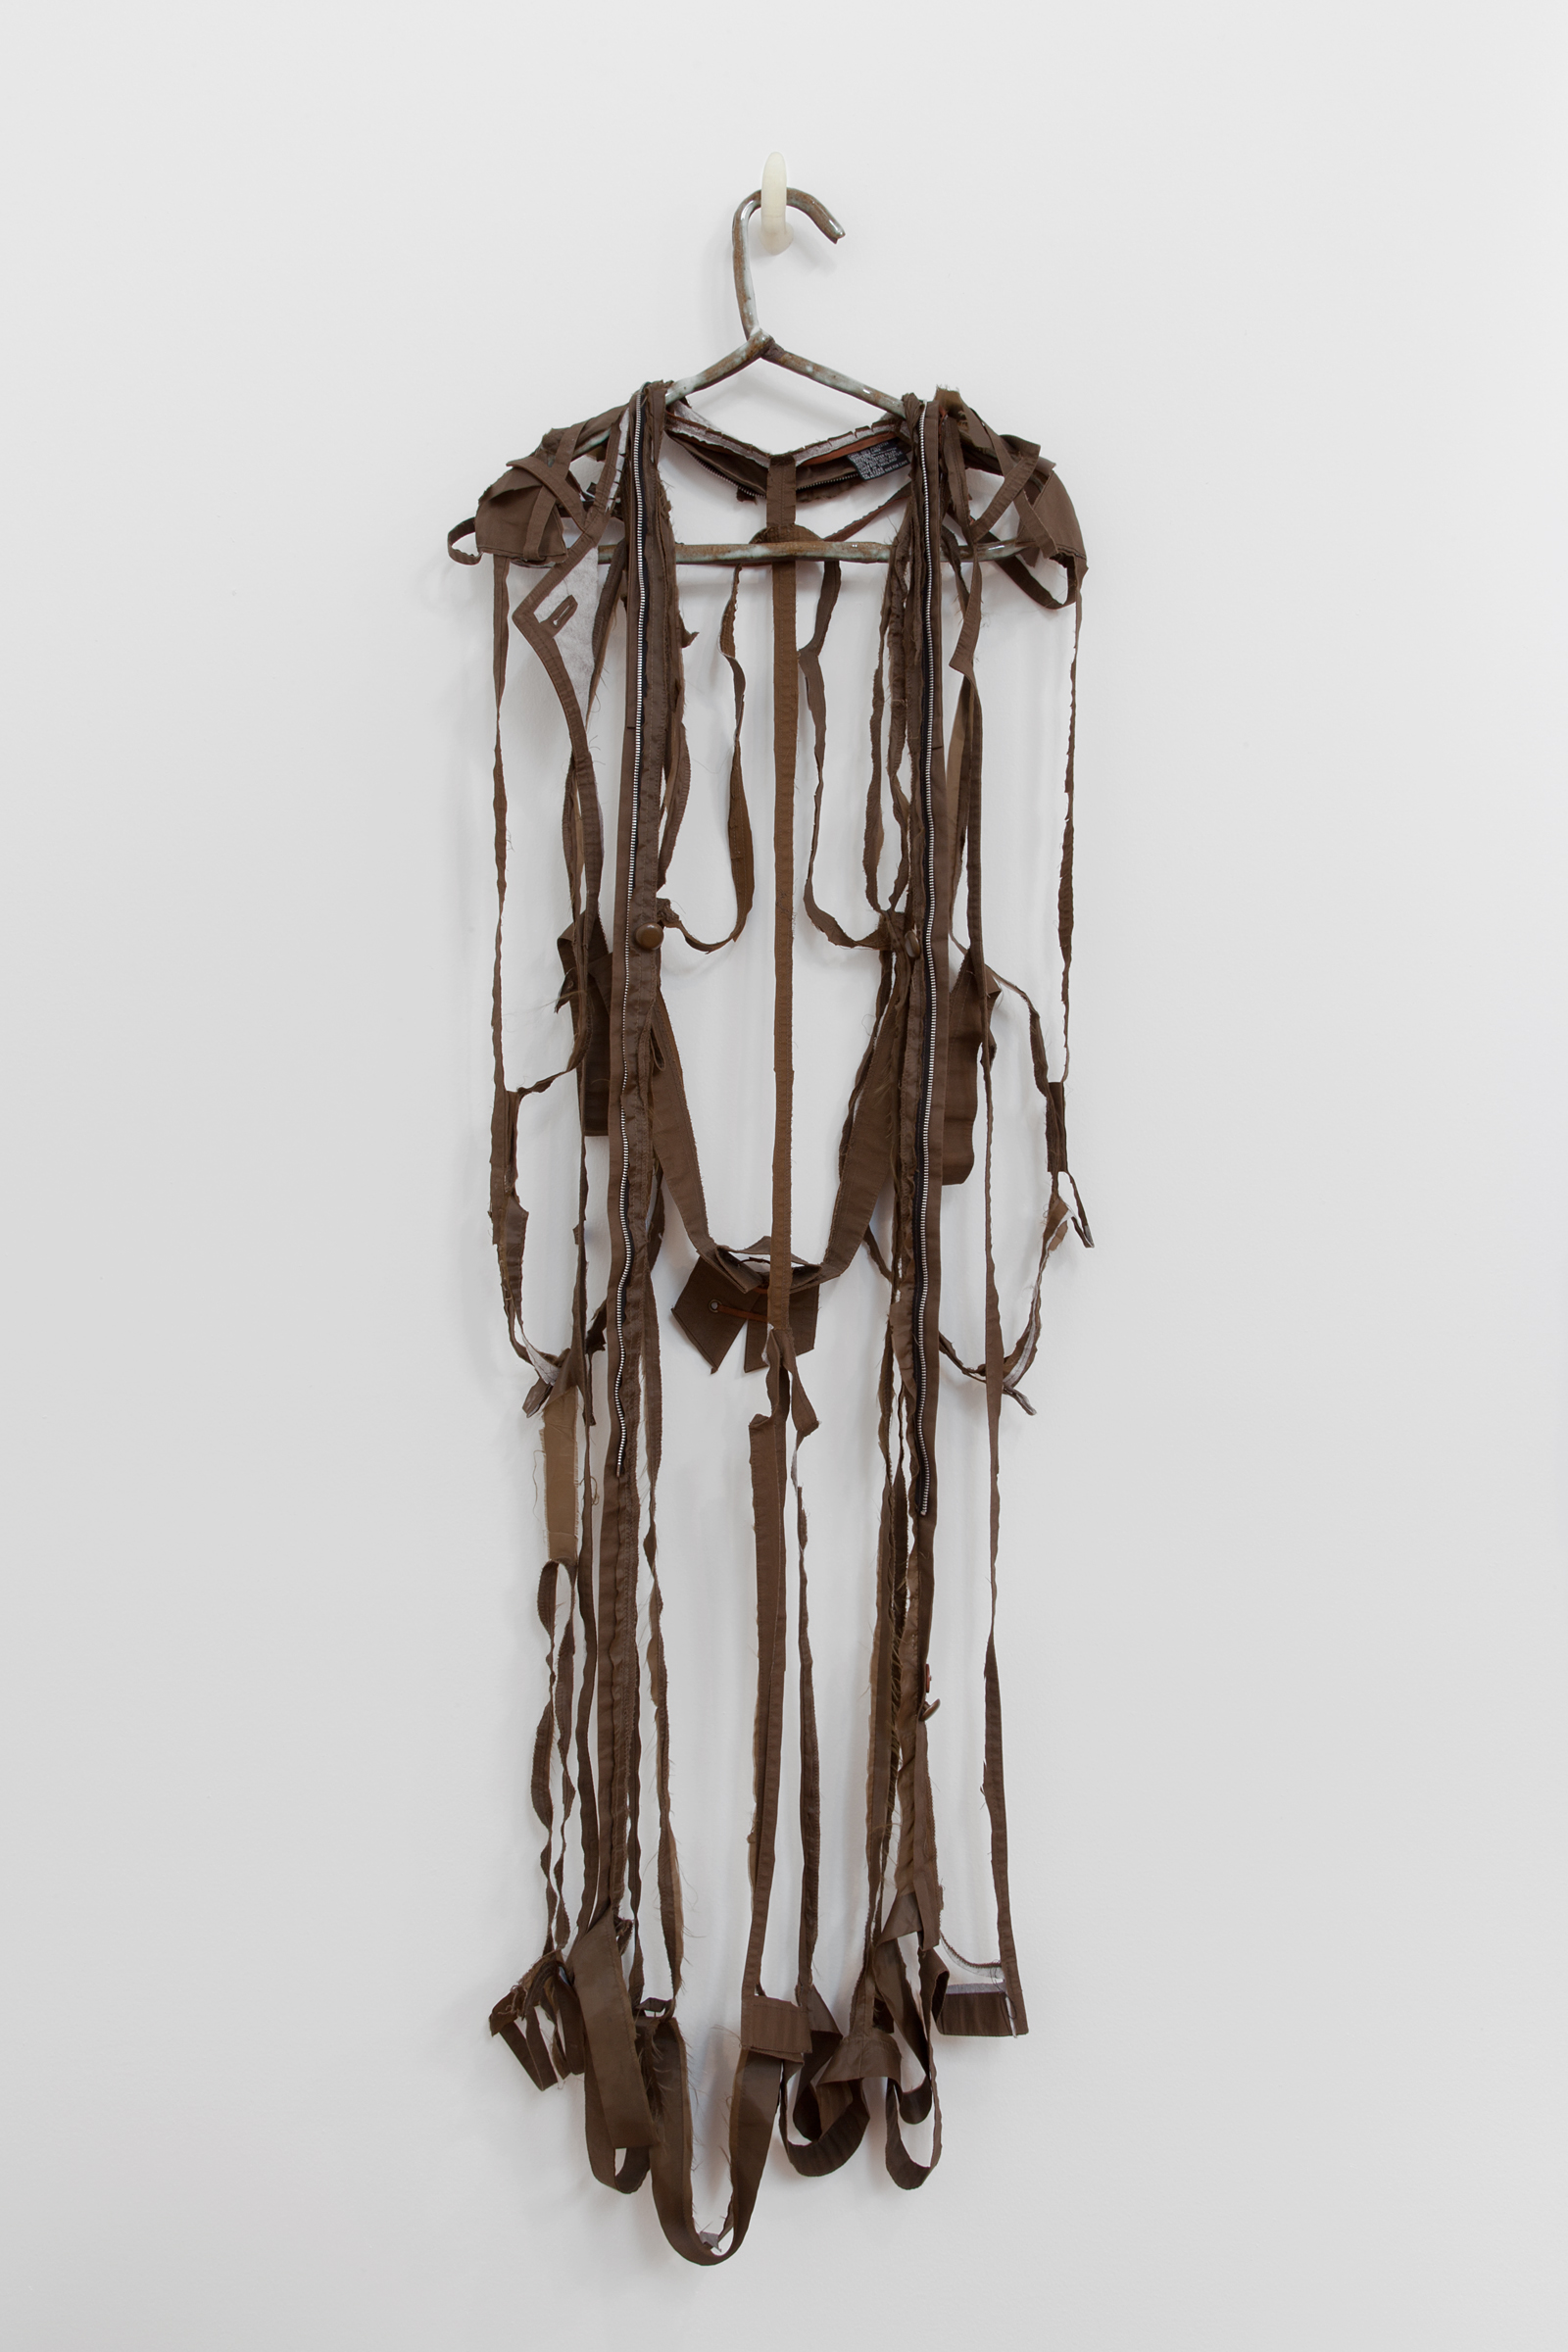 """ANNA SEW HOY   chocolate/chocolat , fired stoneware, trench coat and resin finger hook, 58.5"""" x 18"""" x 3.5"""", 2012"""